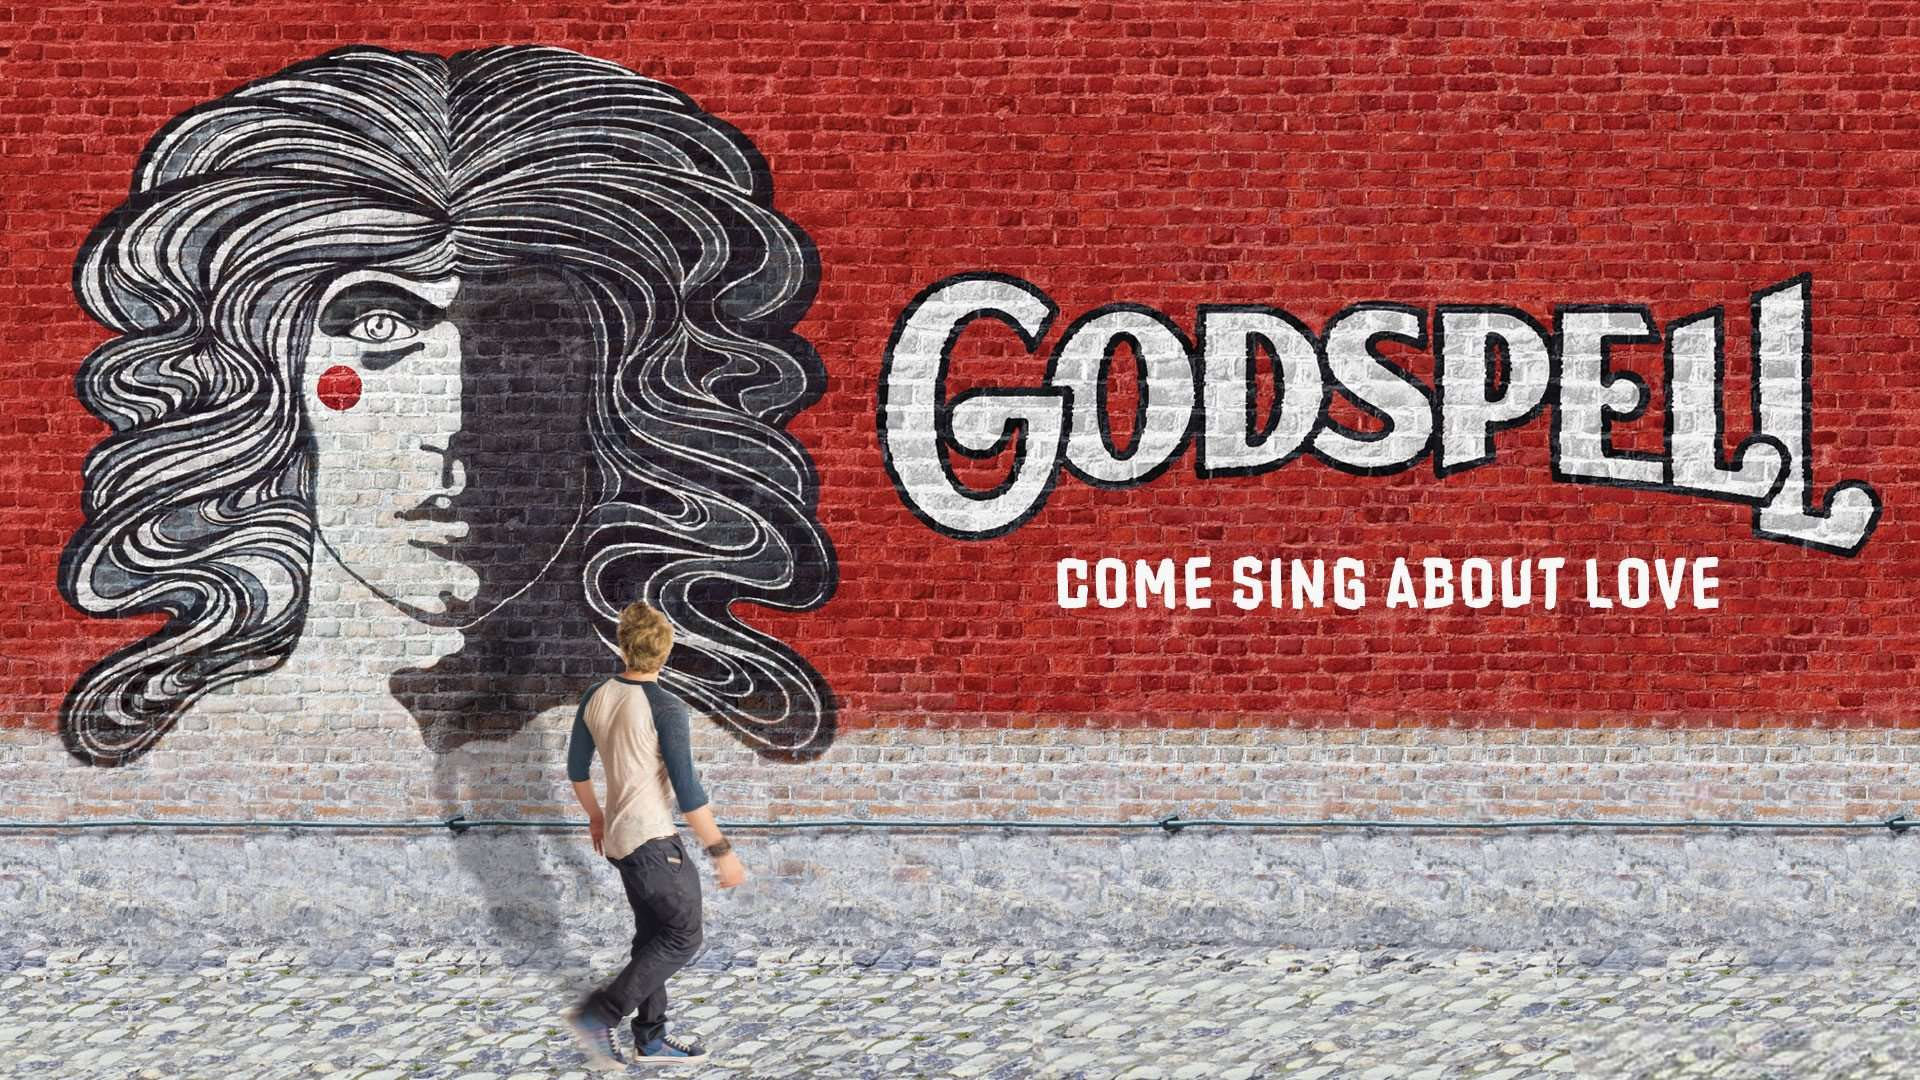 Advertising for the musical Godspell painted on a brick wall with a passer by looking at it.